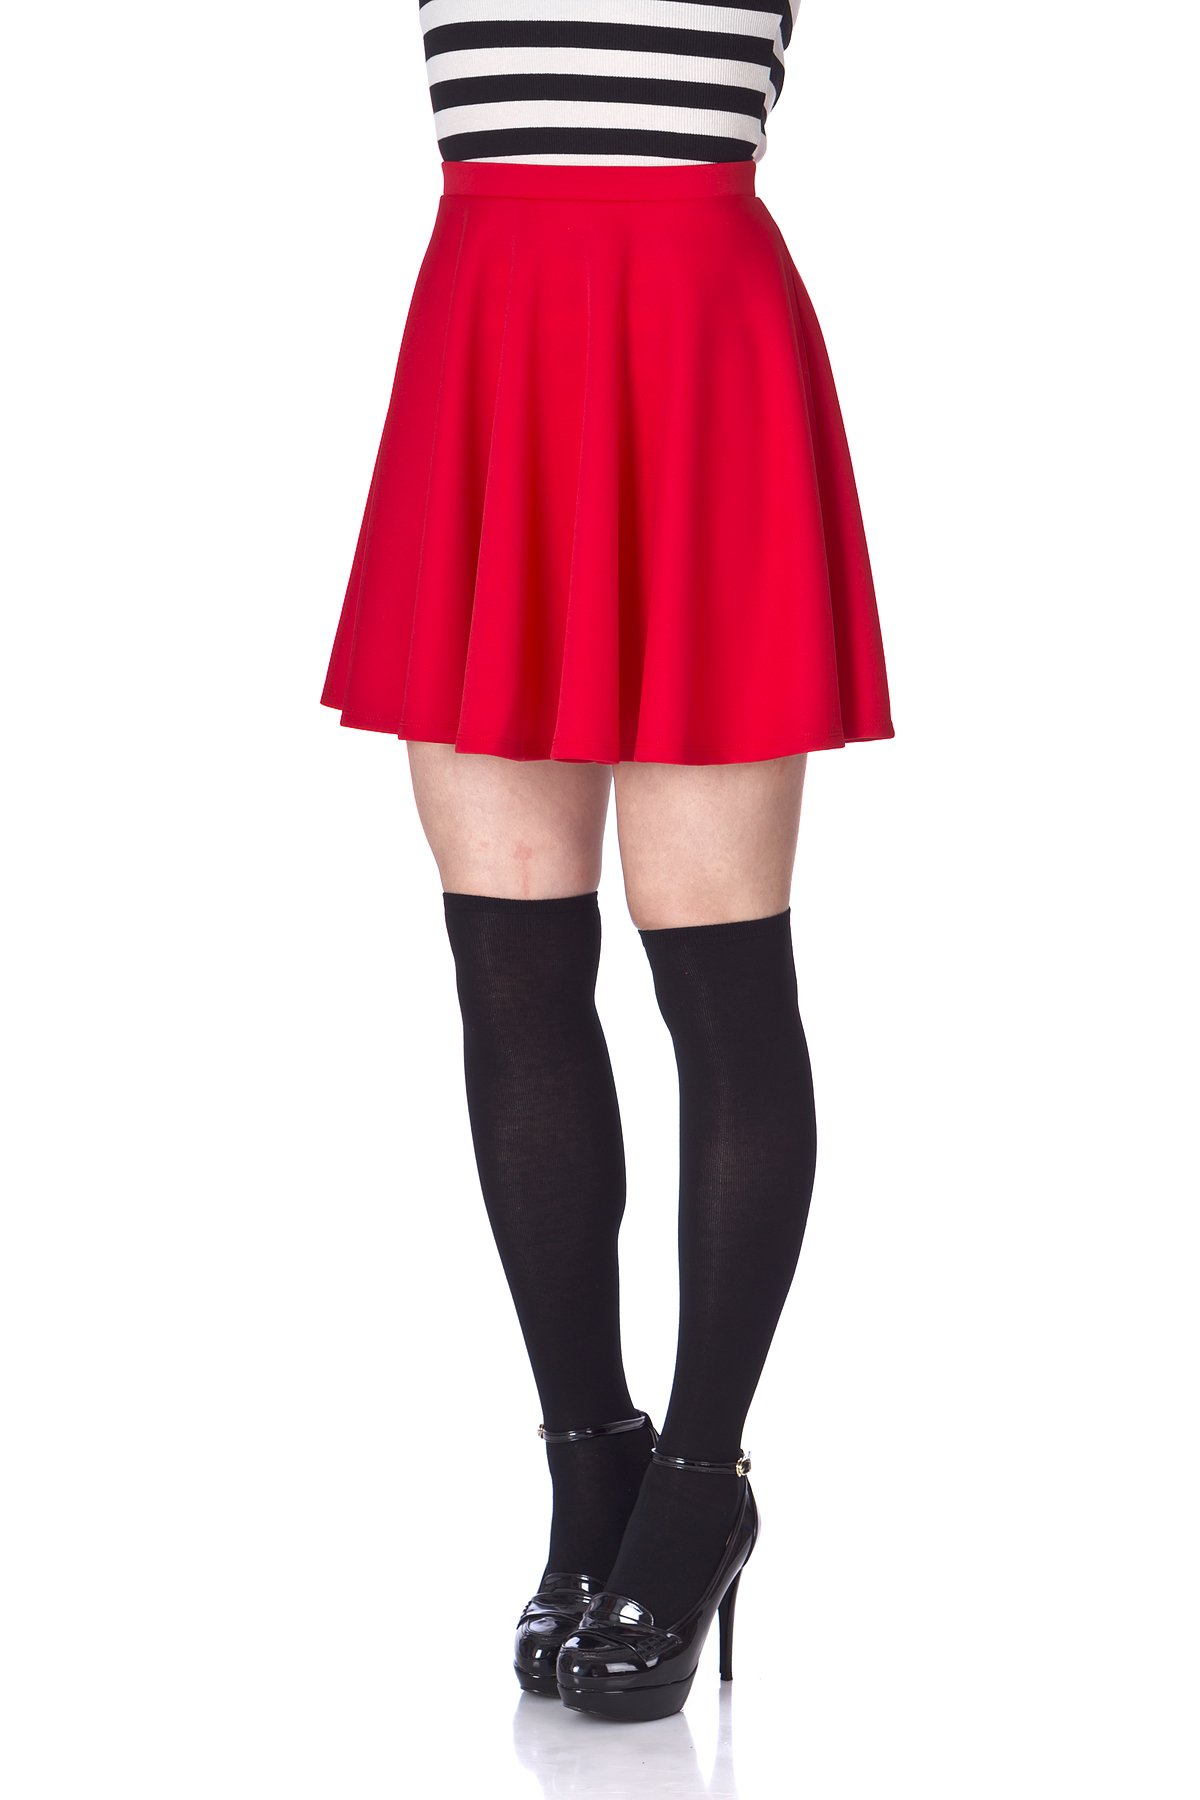 Flouncy High Waist A line Full Flared Circle Swing Dance Party Casual Skater Short Mini Skirt Red 06